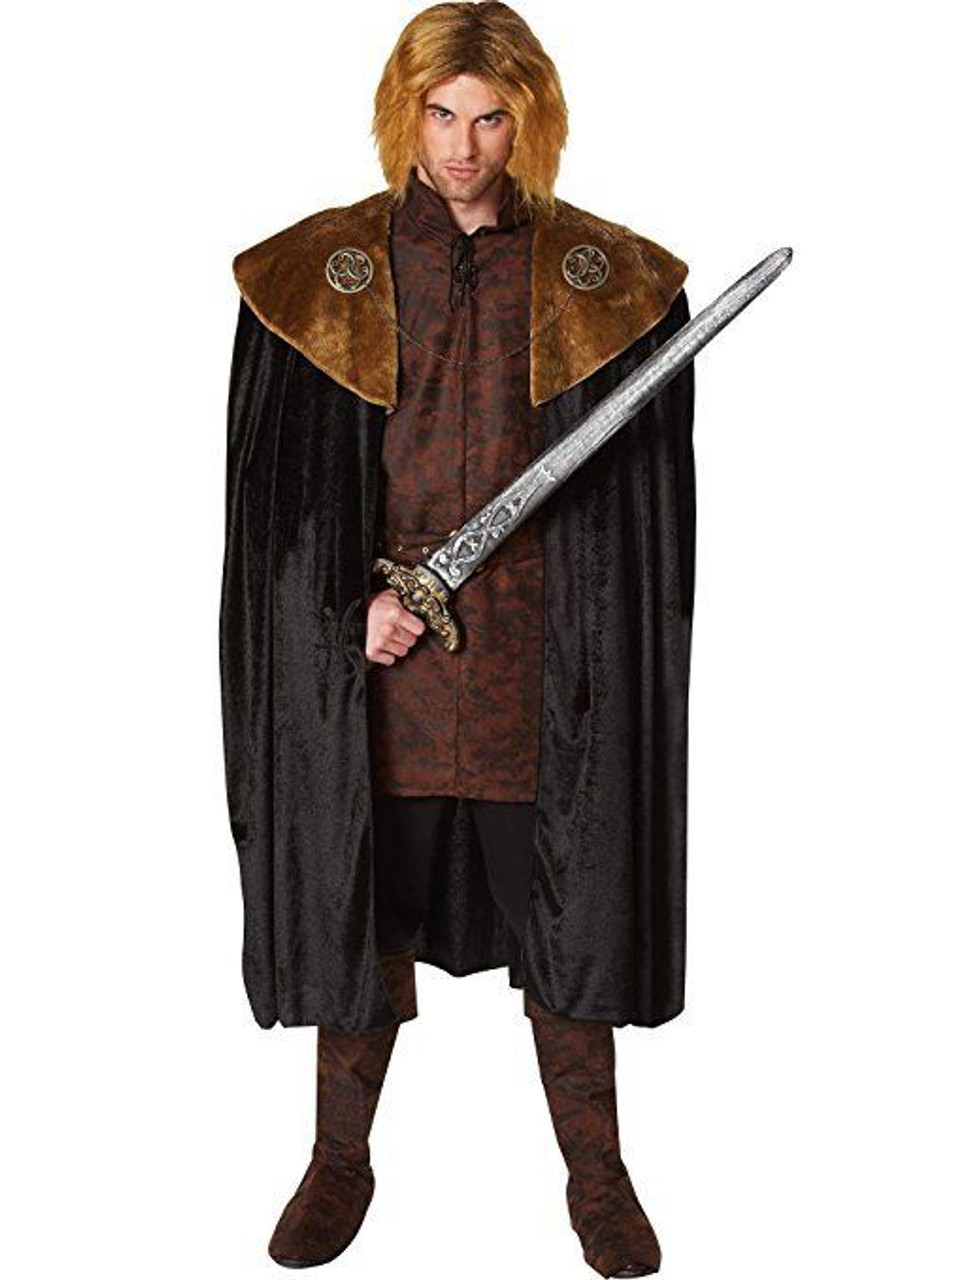 Costume Culture Franco Medieval King Cape Adult Mens Halloween Costume 32376  sc 1 st  Fearless Apparel & Costume Culture Franco Medieval King Cape Adult Mens Halloween ...